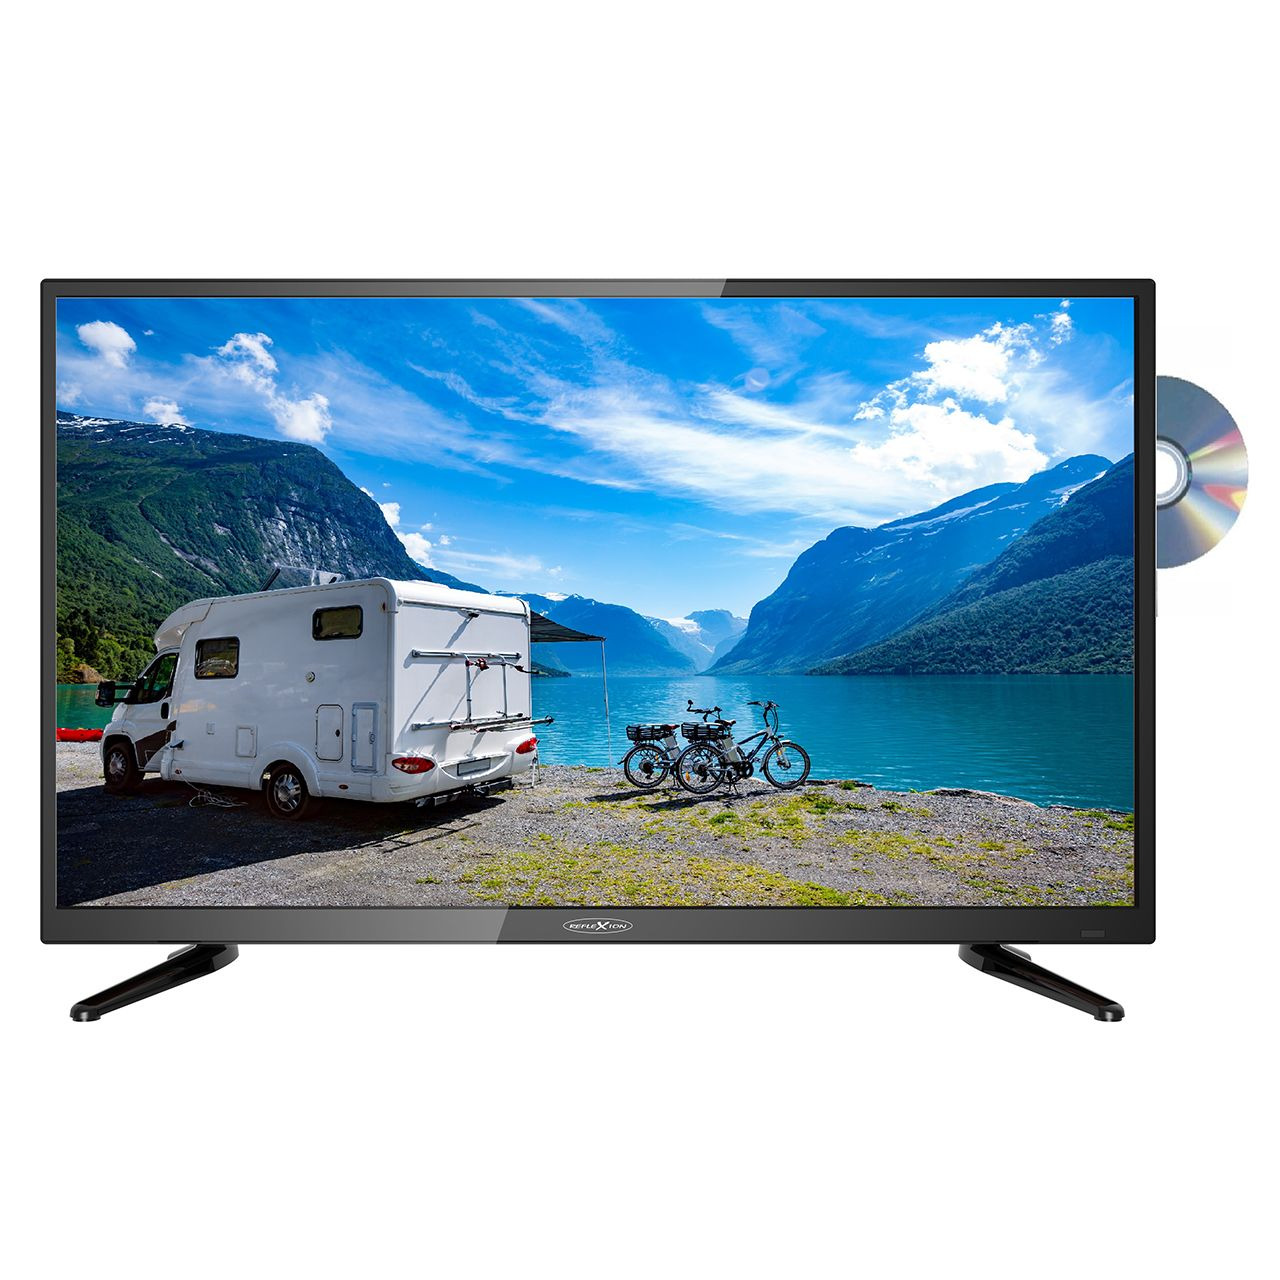 Reflexion 5-in-1-LED-TV LDD3288- 81 cm (32)- DVD-Player- DVB-S-S2-C-T-T2- H-265-HEVC- 12V-Anschluss